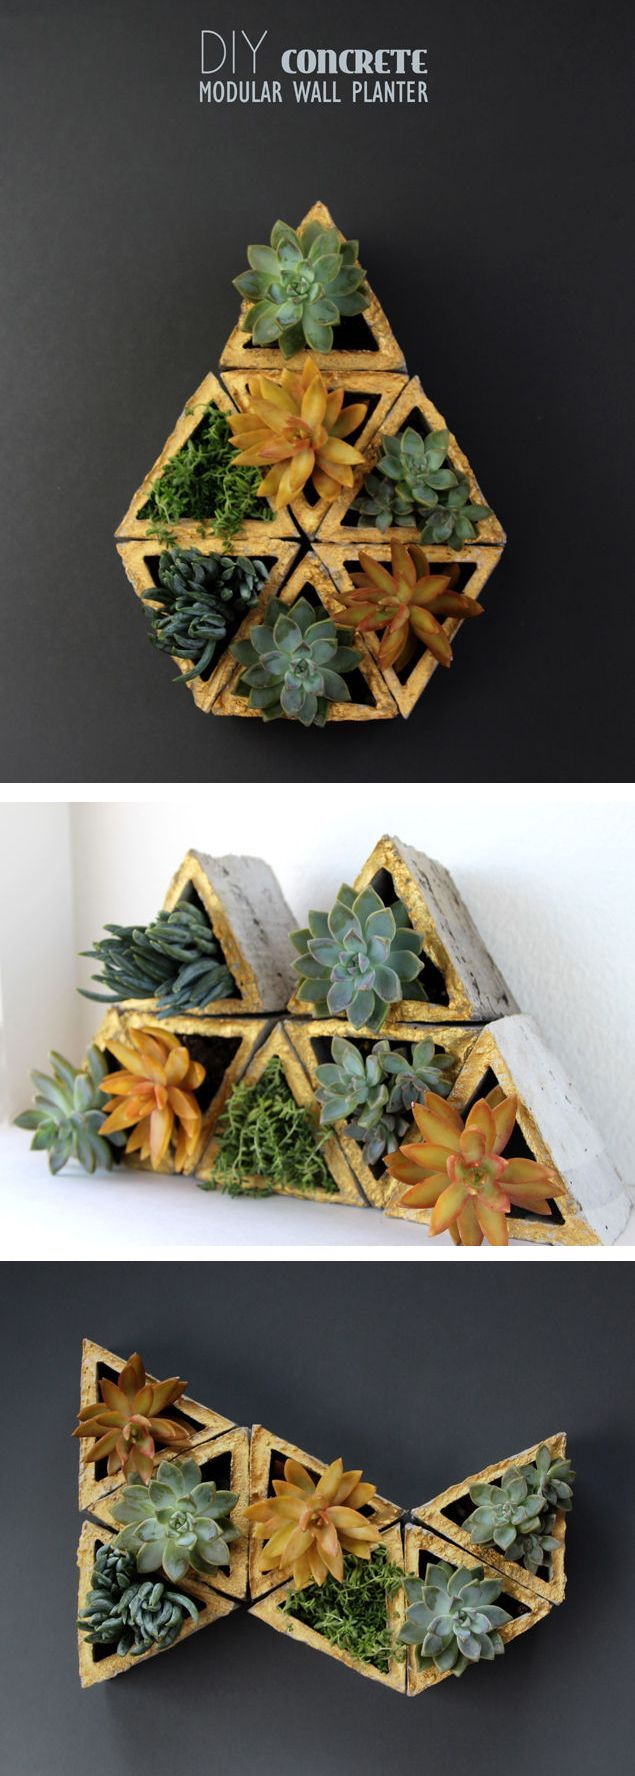 DIY Concrete modular planters! What a unique and eye-catching way to bring your garden inside!